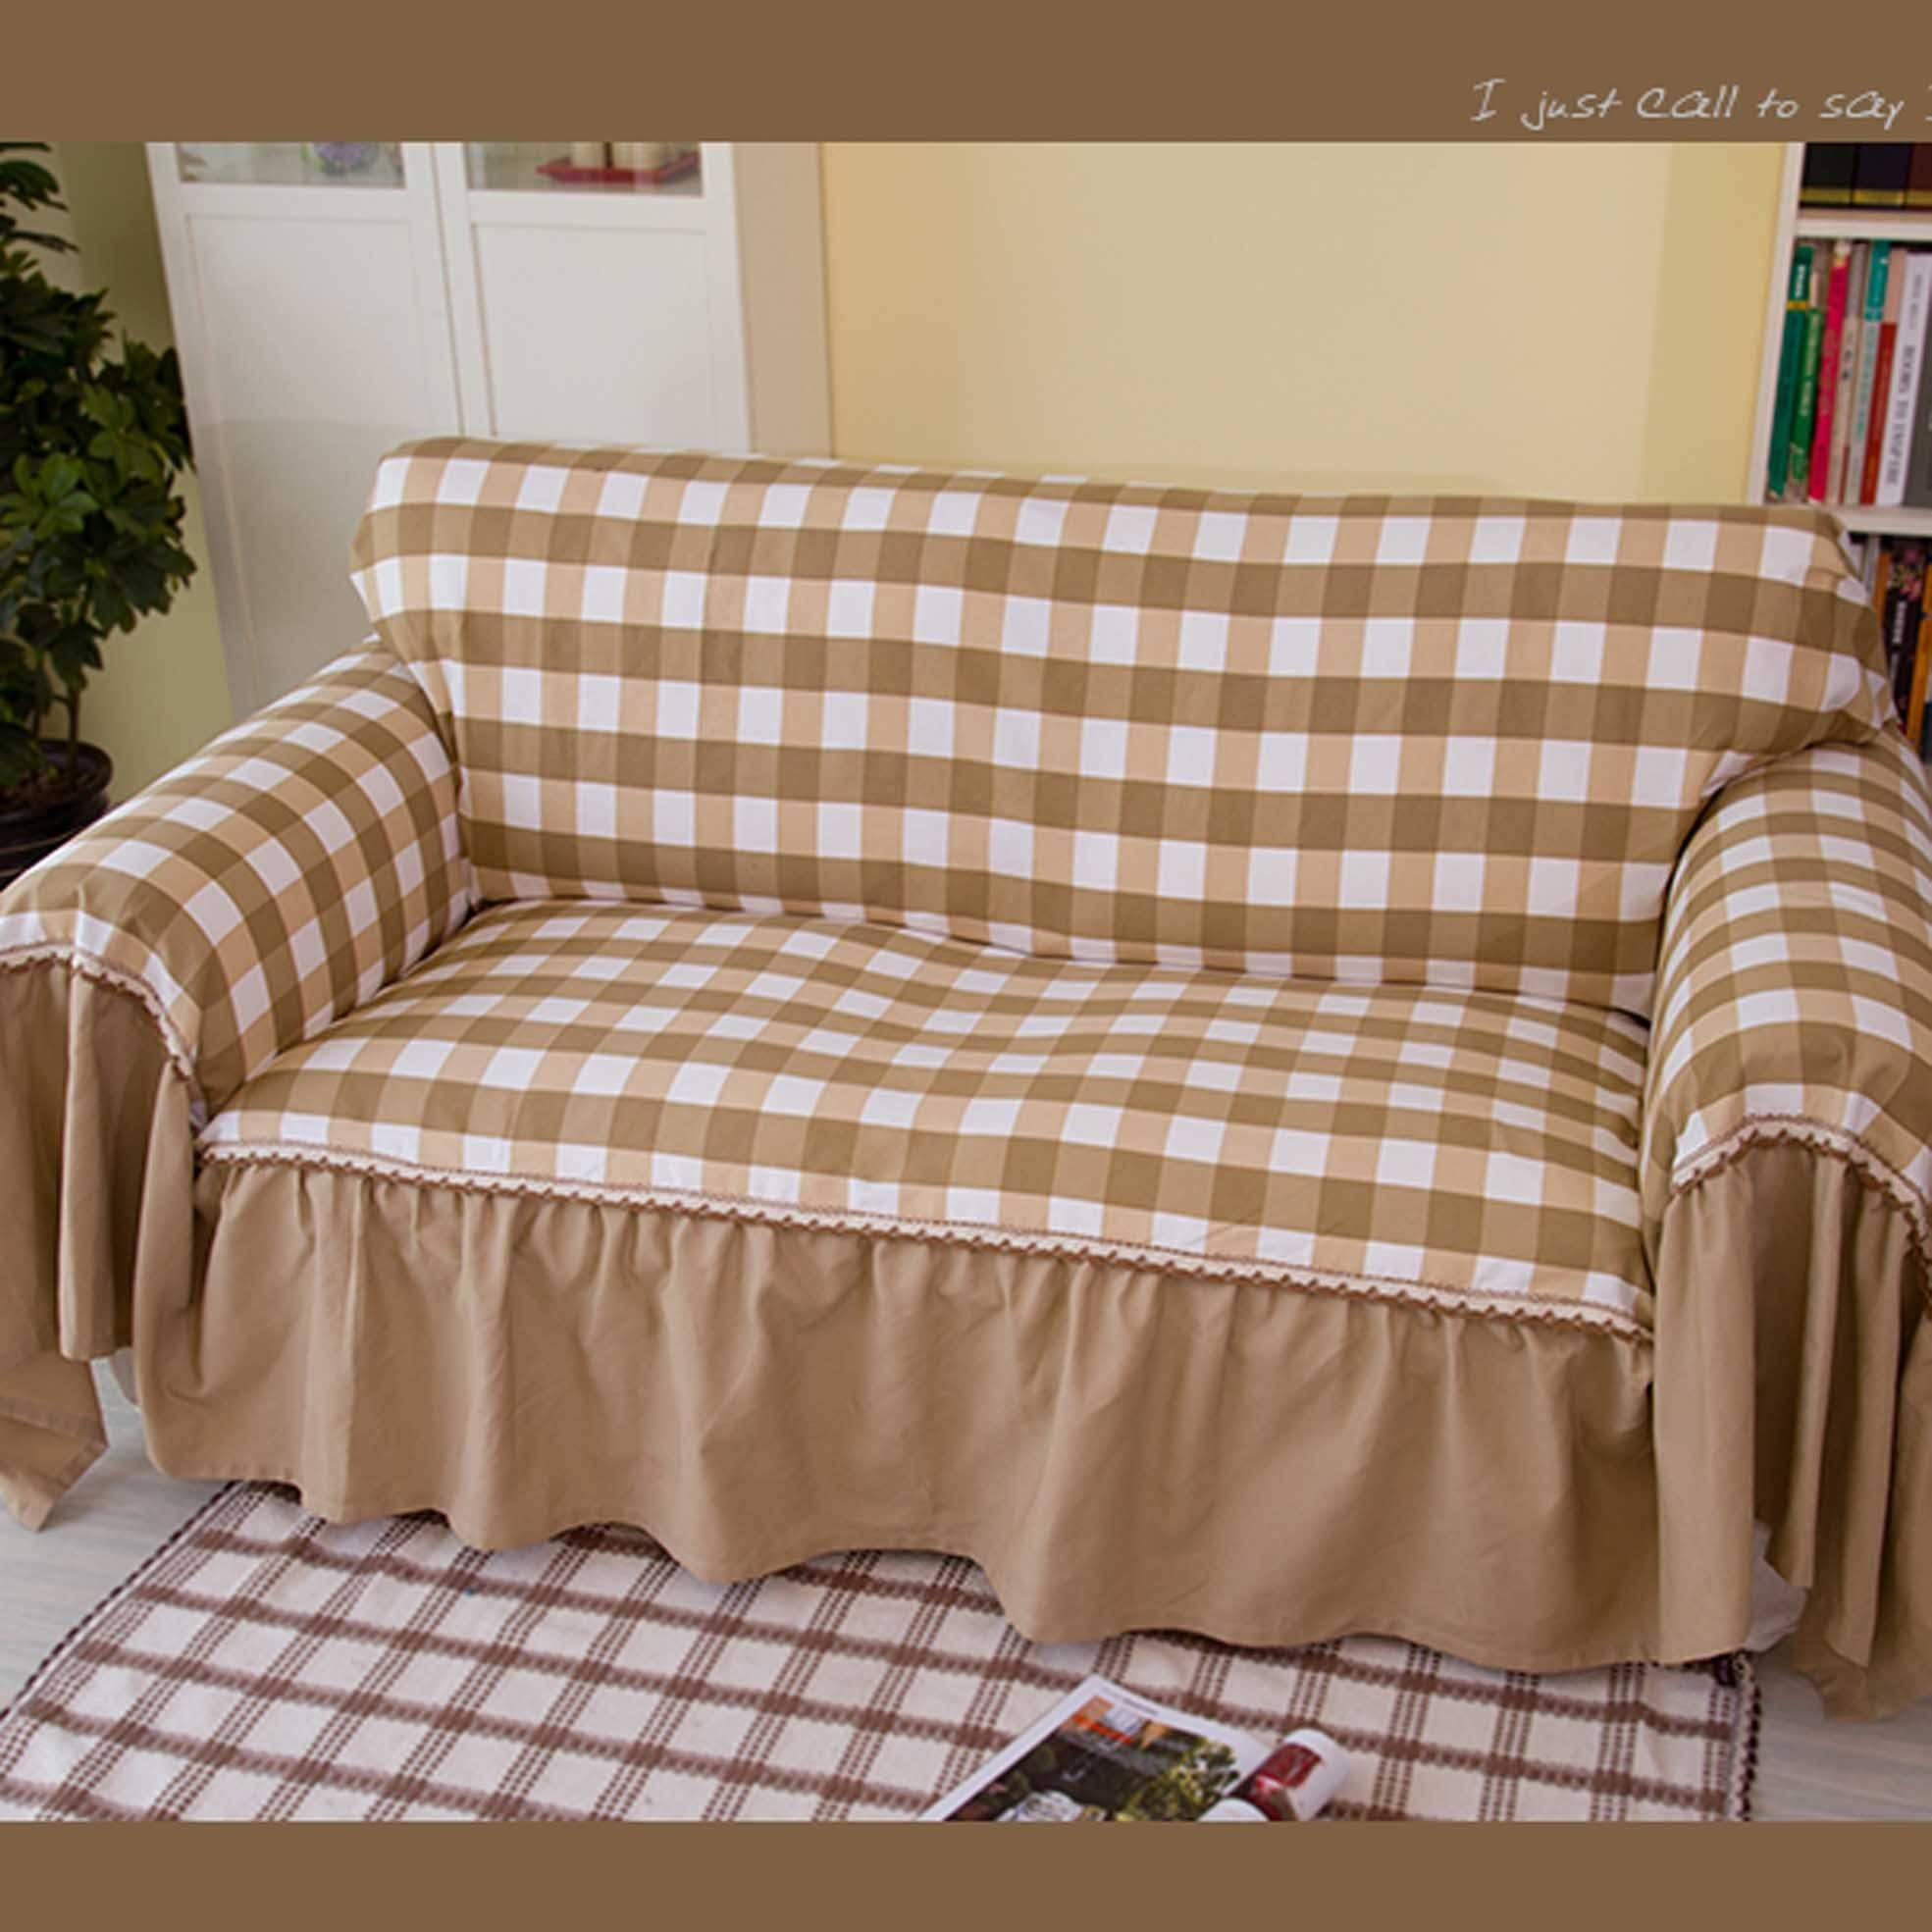 Decor: Endearing Maximize Sofa Throws For Gorgeous Living Room throughout Cheap Throws for Sofas (Image 6 of 30)